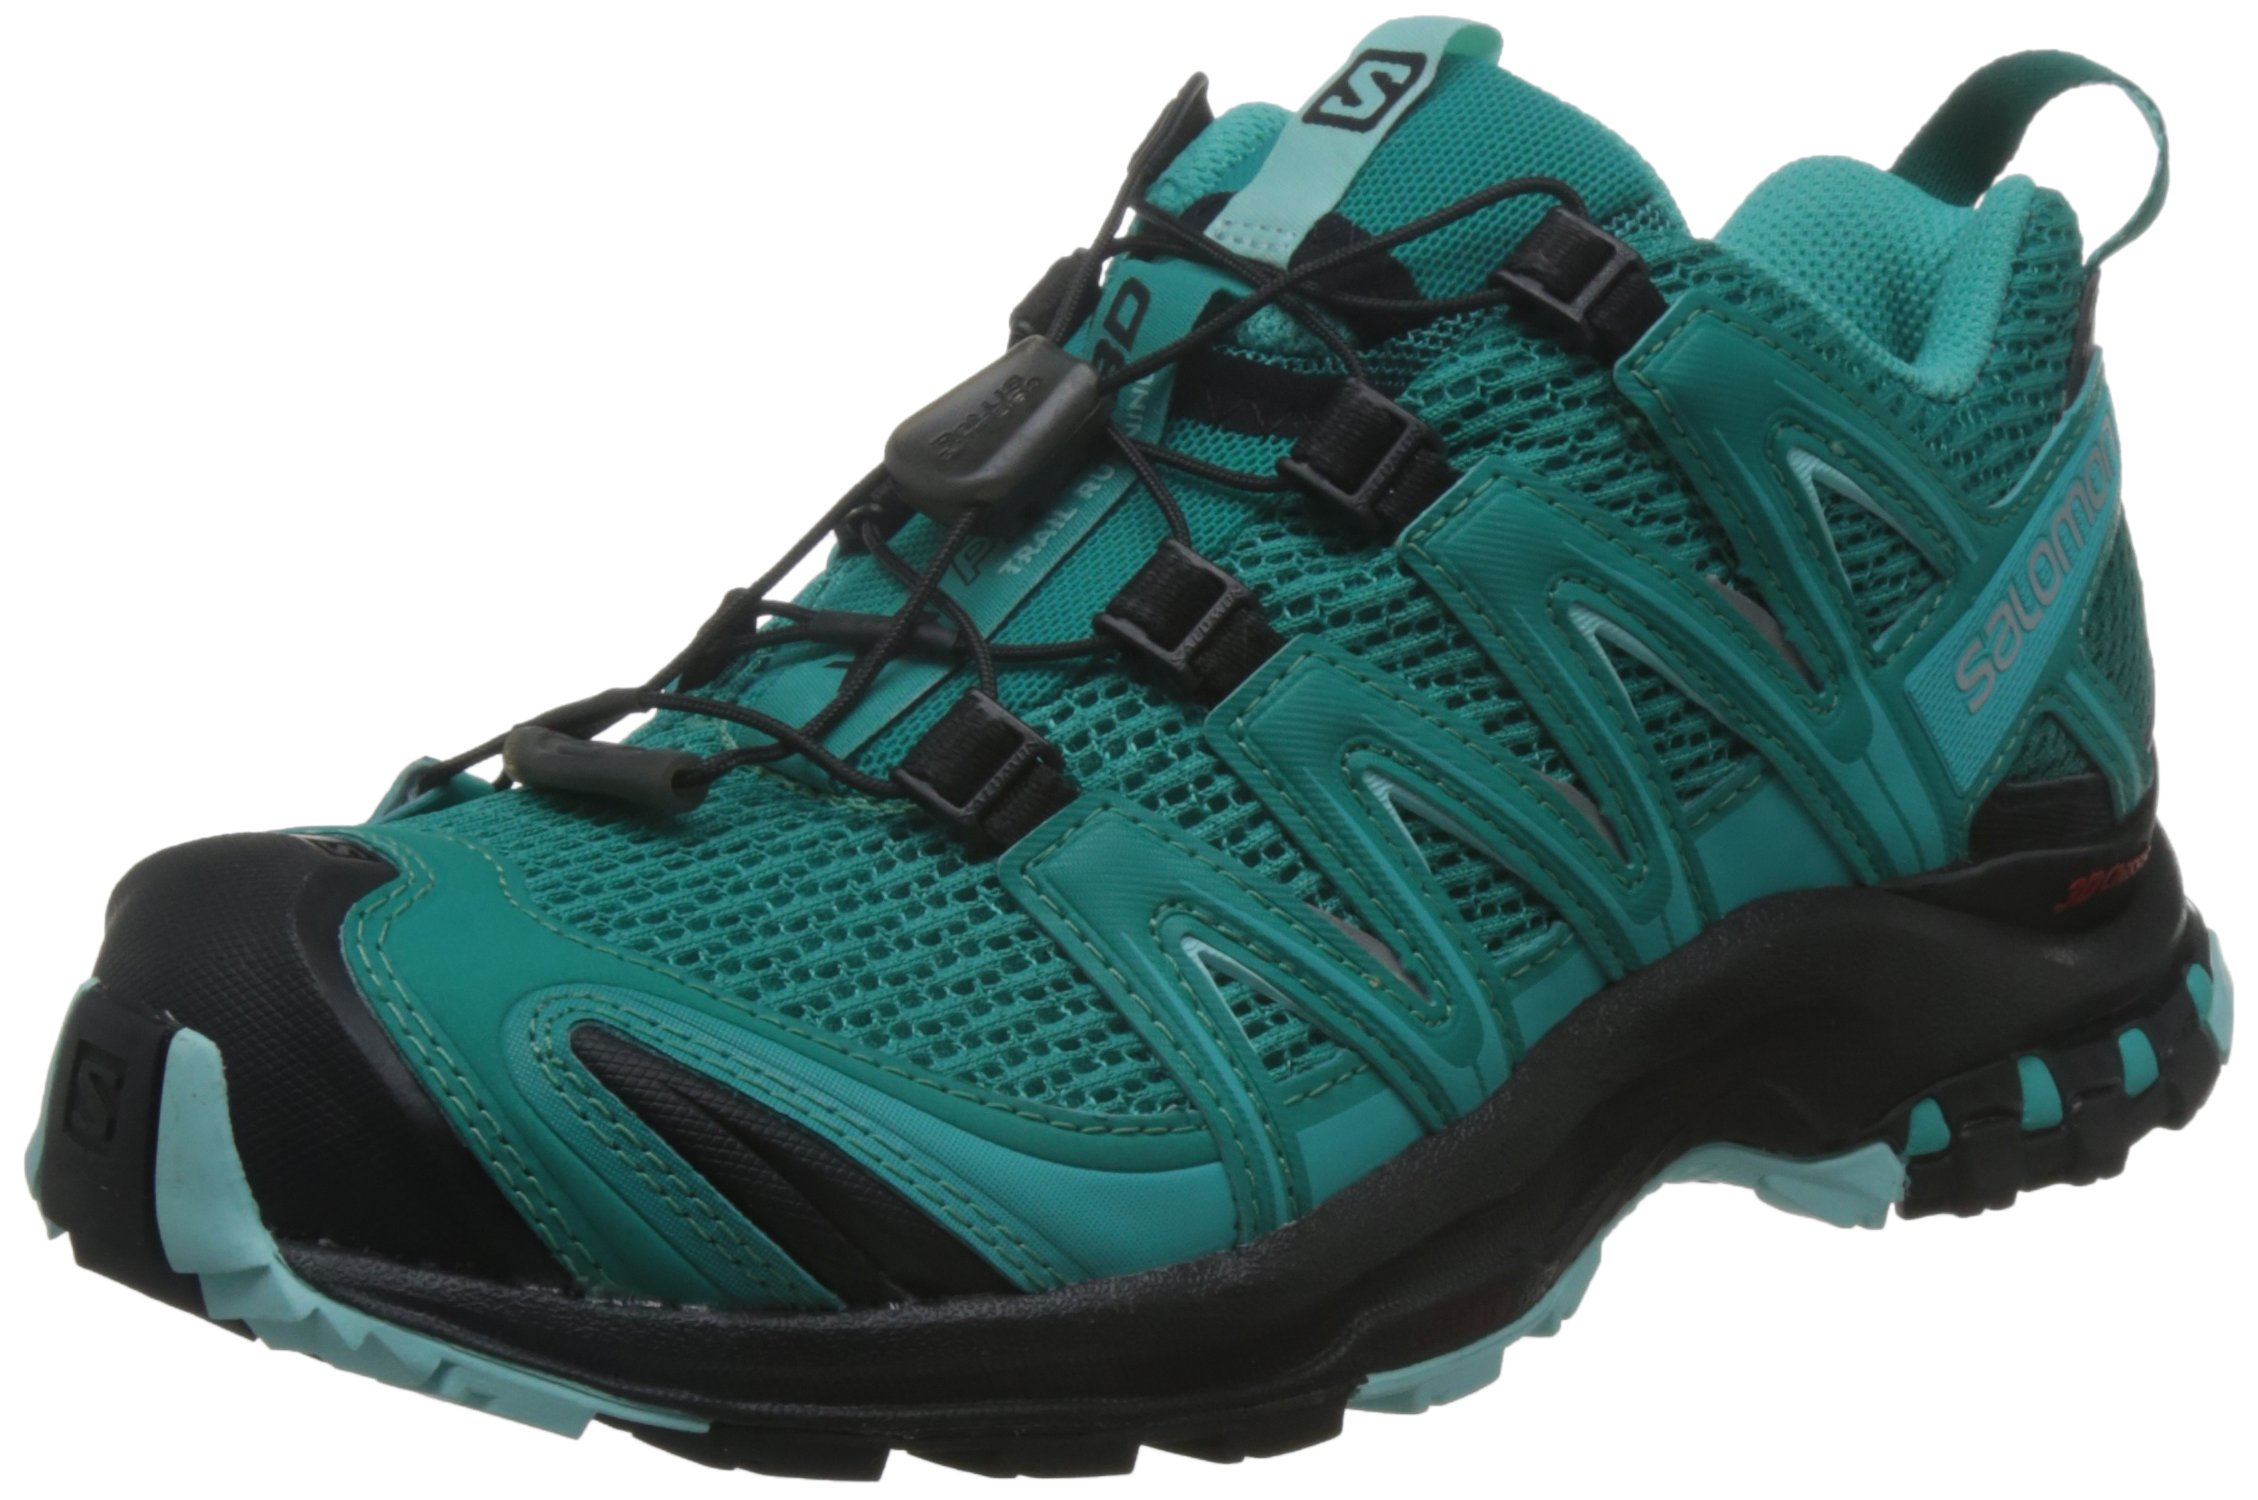 Salomon Women's XA Pro 3D W Trail Runner, Deep Peacock Blue/Black/Aruba Blue, 6 B by Salomon